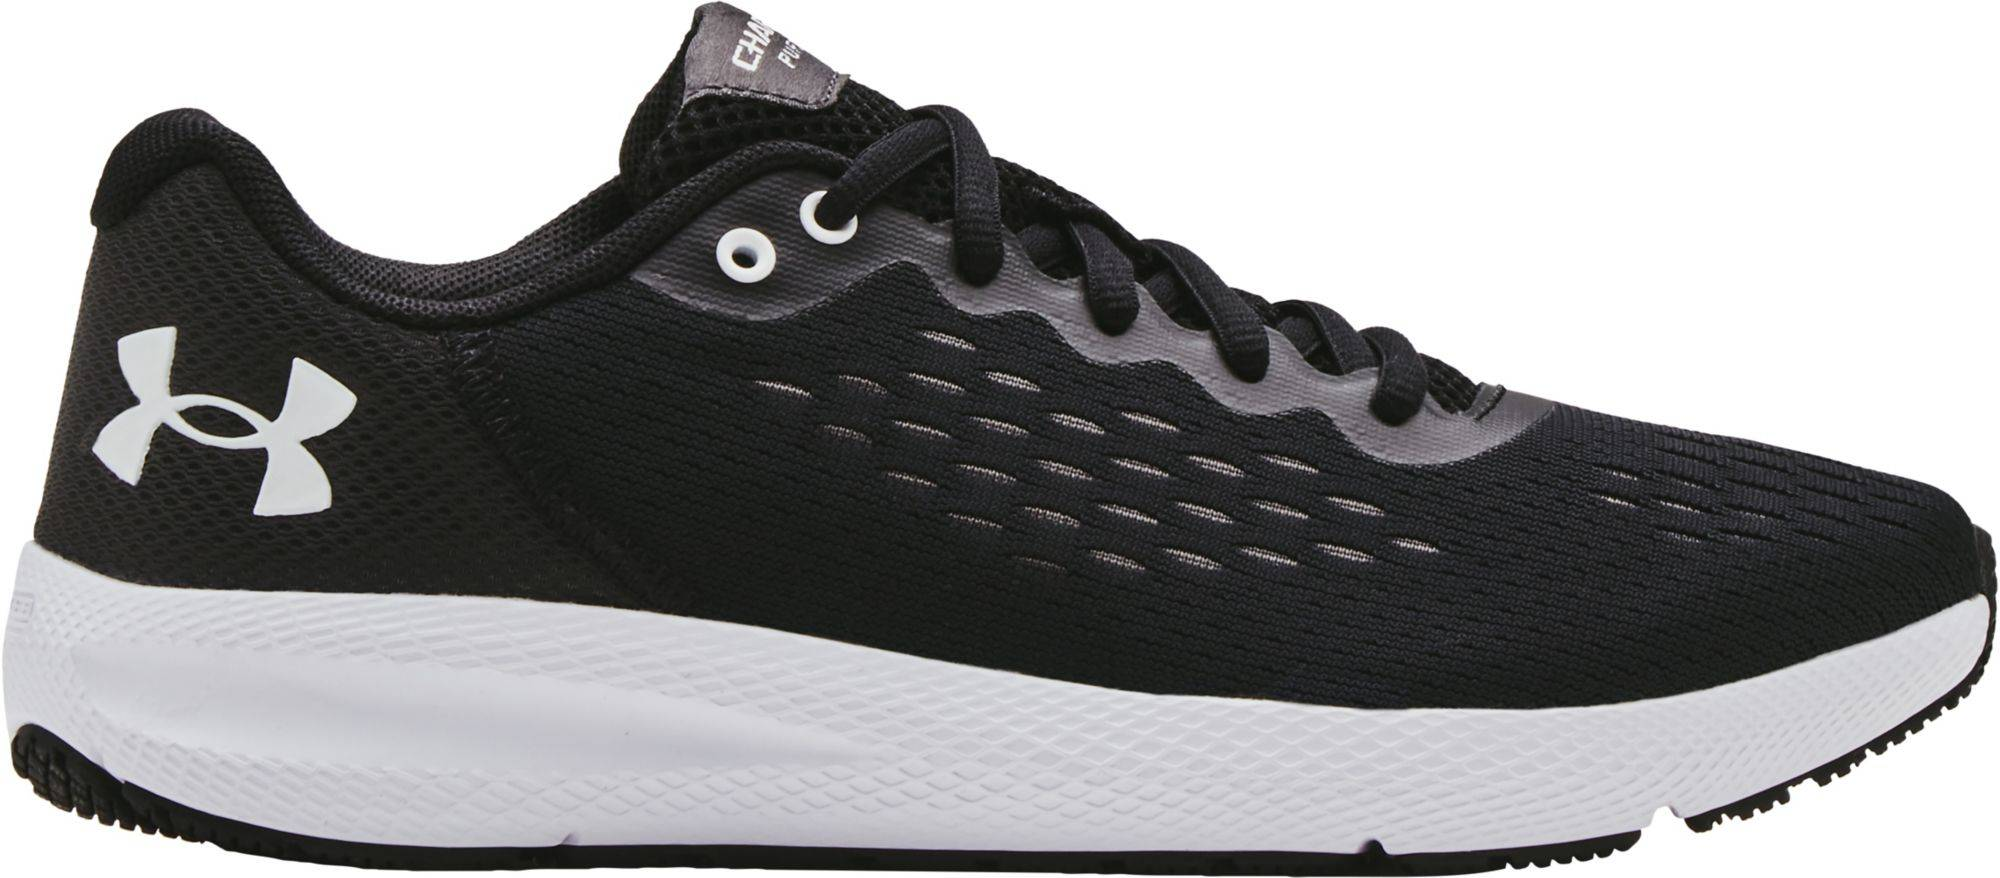 Under Armour Women's Charged Pursuit 2 SE Running Shoes, Black